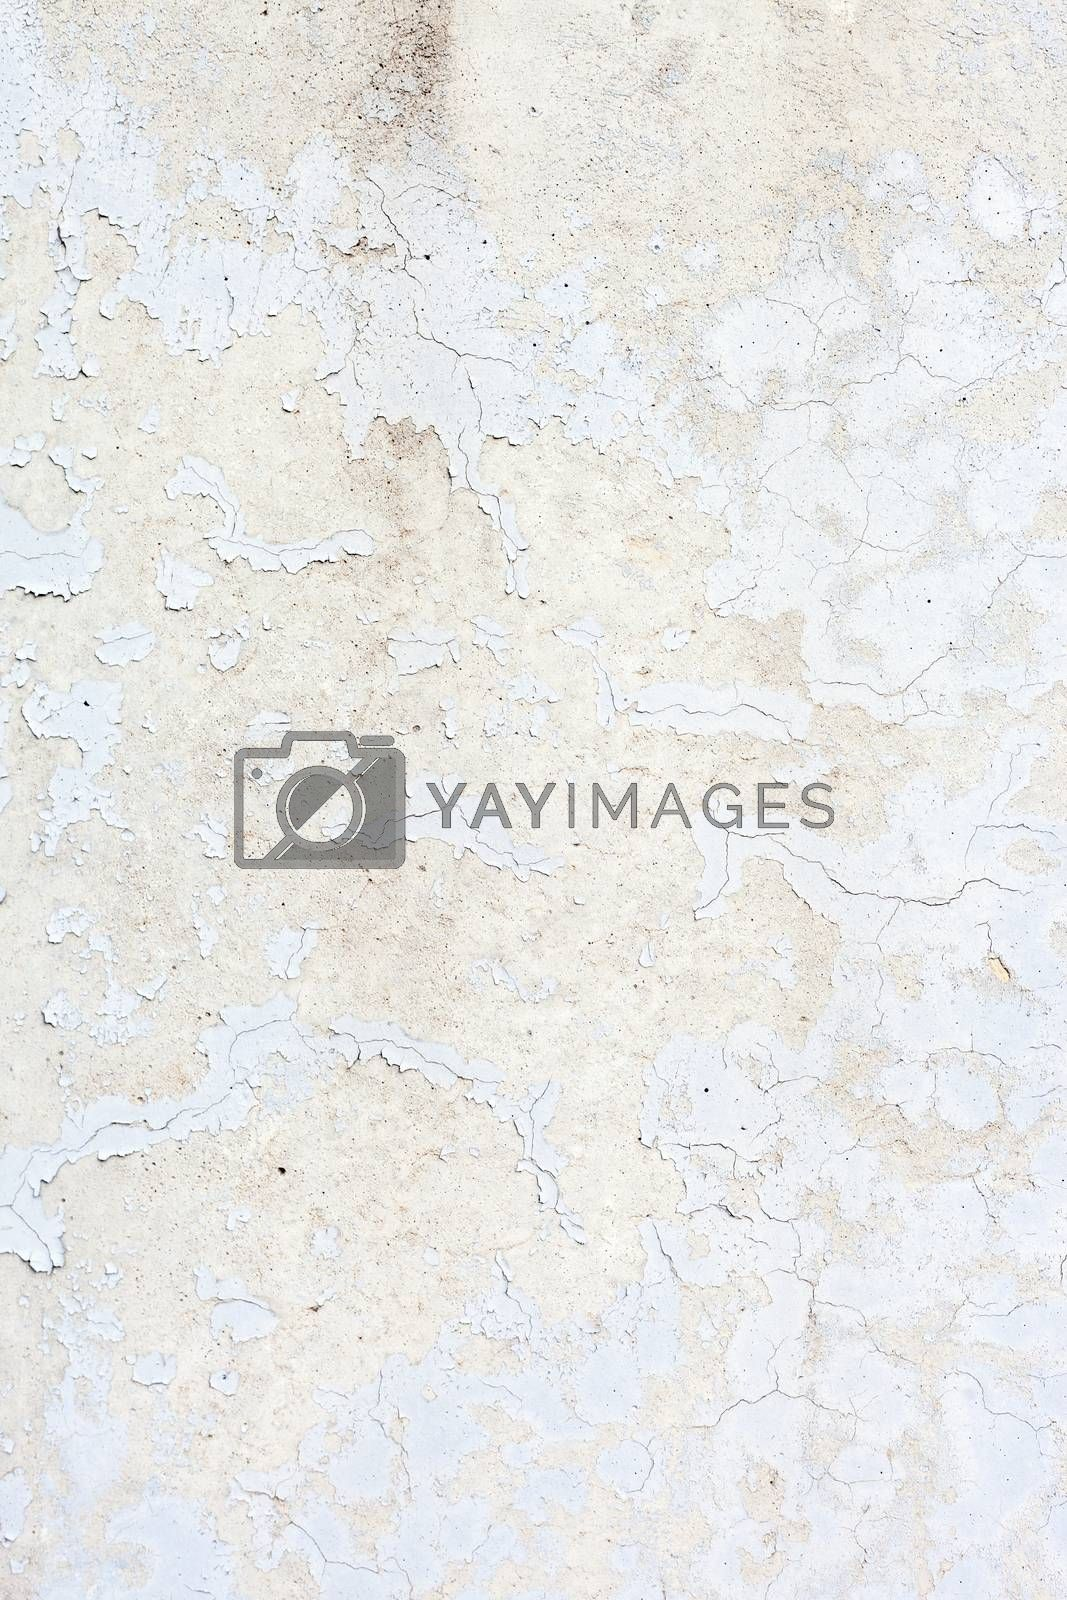 Royalty free image of Grungy White Concrete Wall Background by H2Oshka